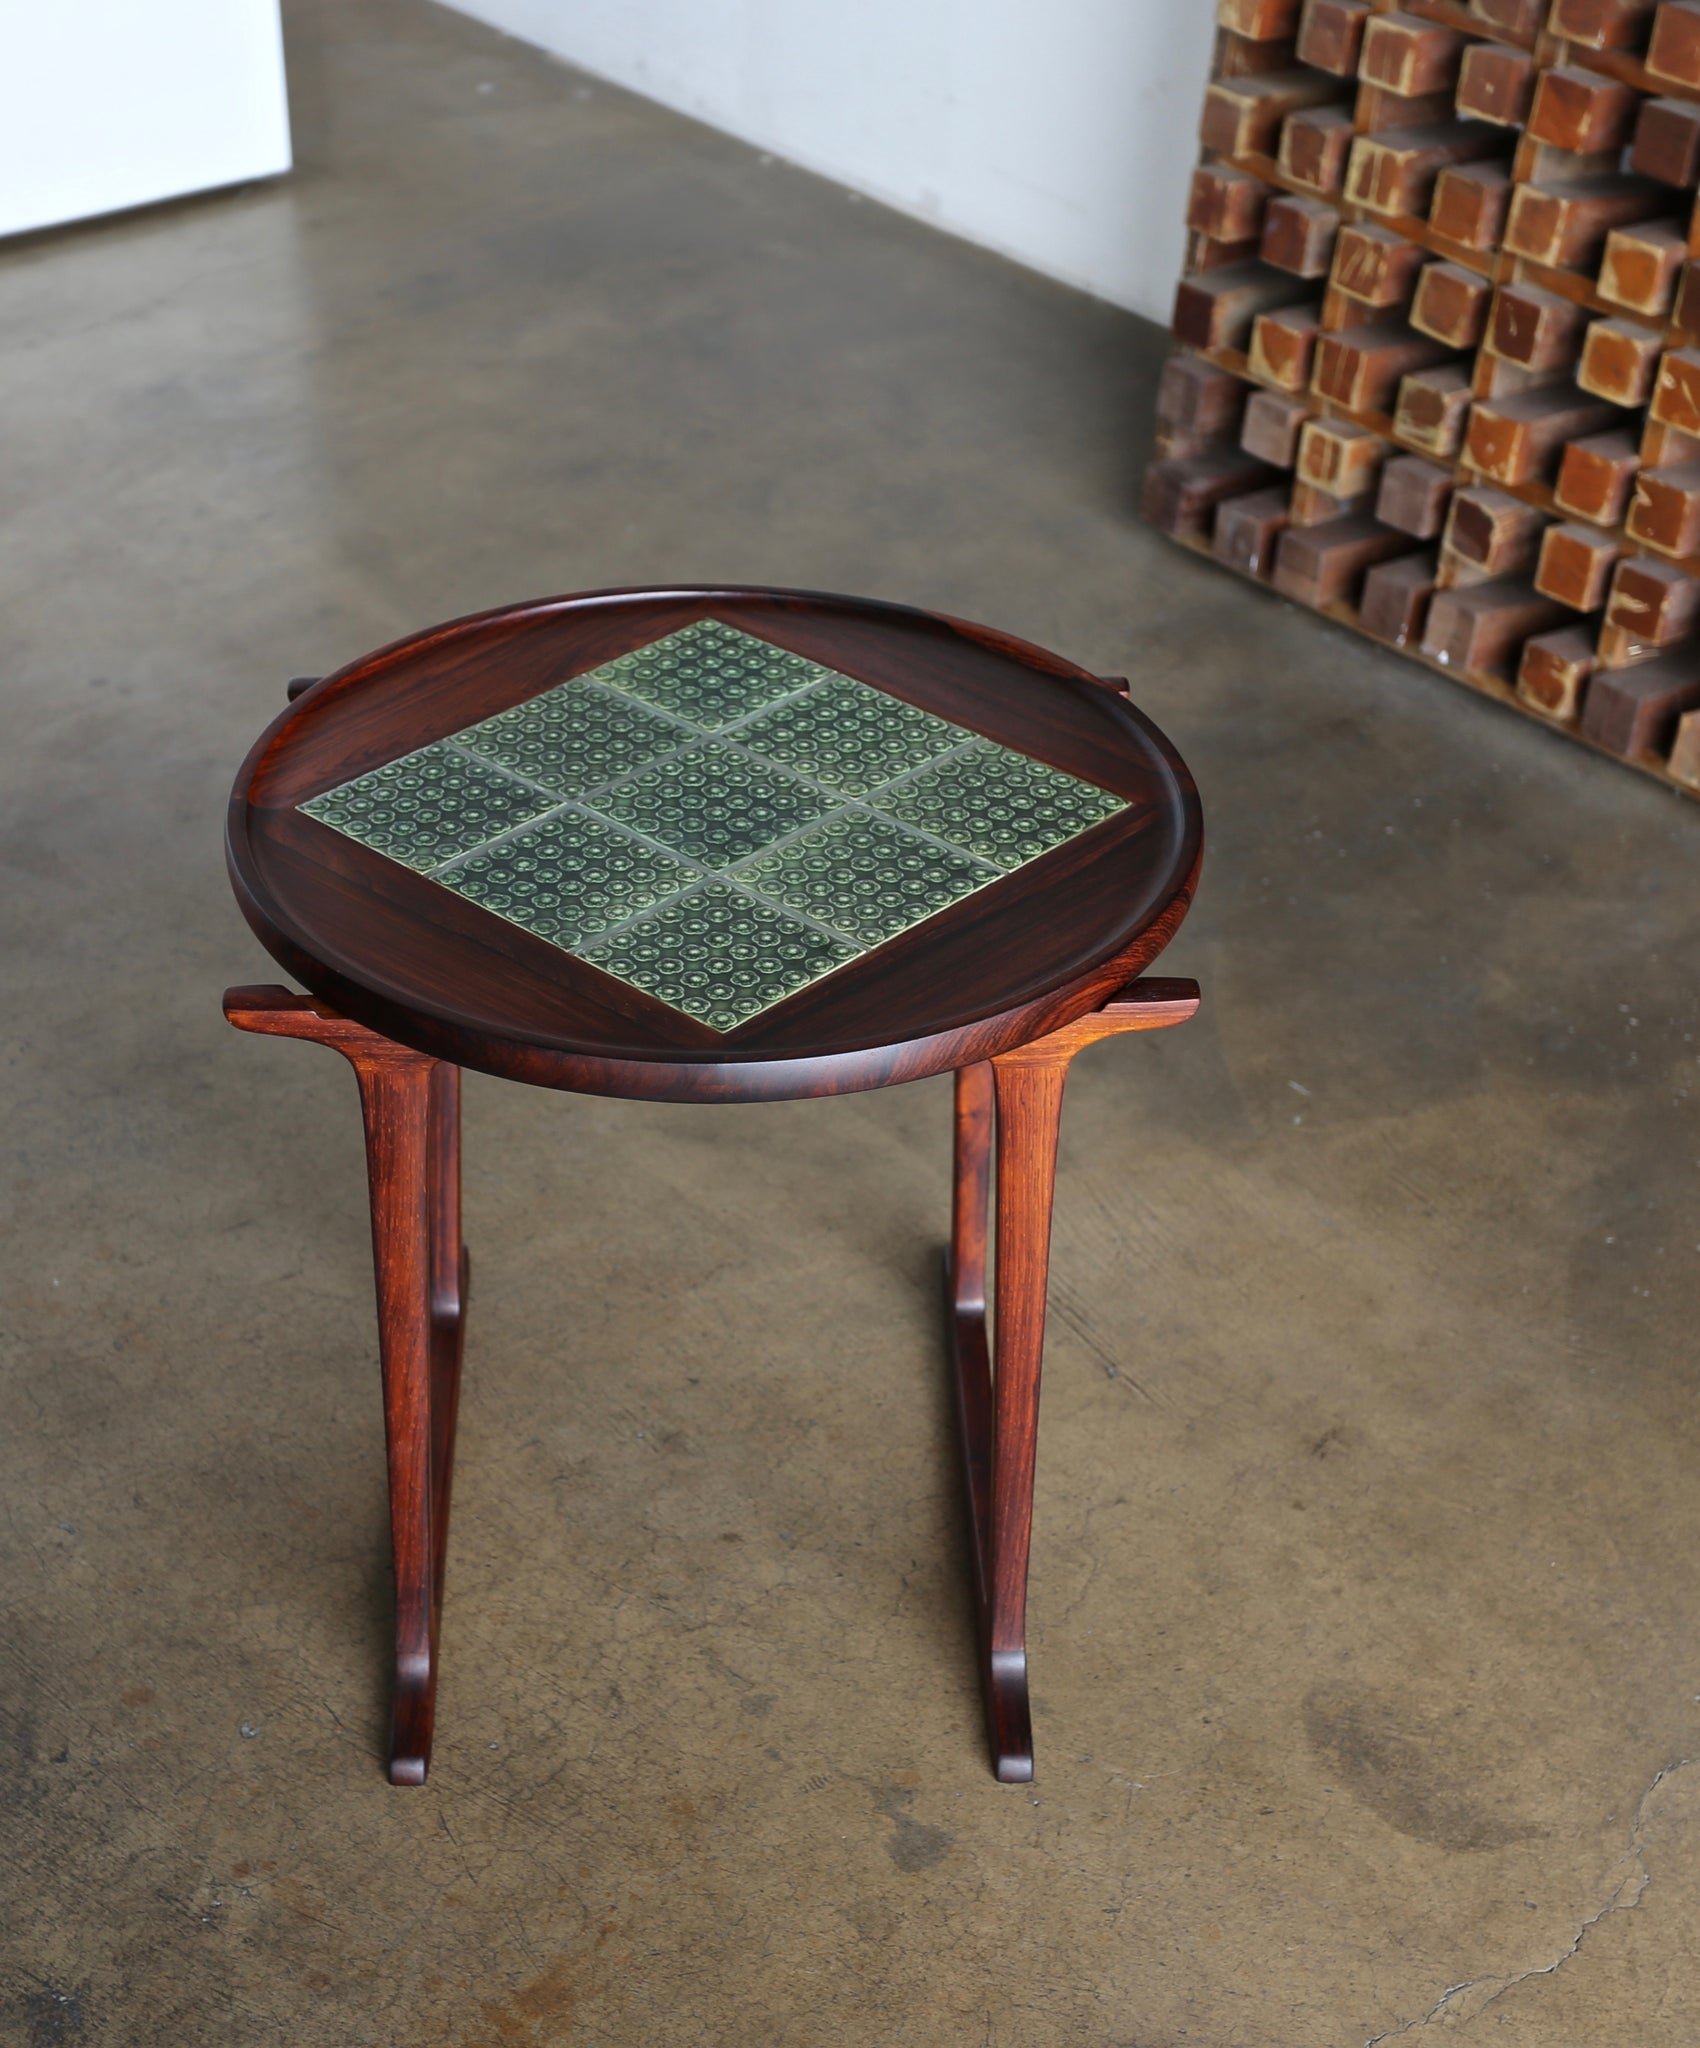 Jens Quistgaard Rosewood & Tile Side Table for Richard Nissen circa 1966